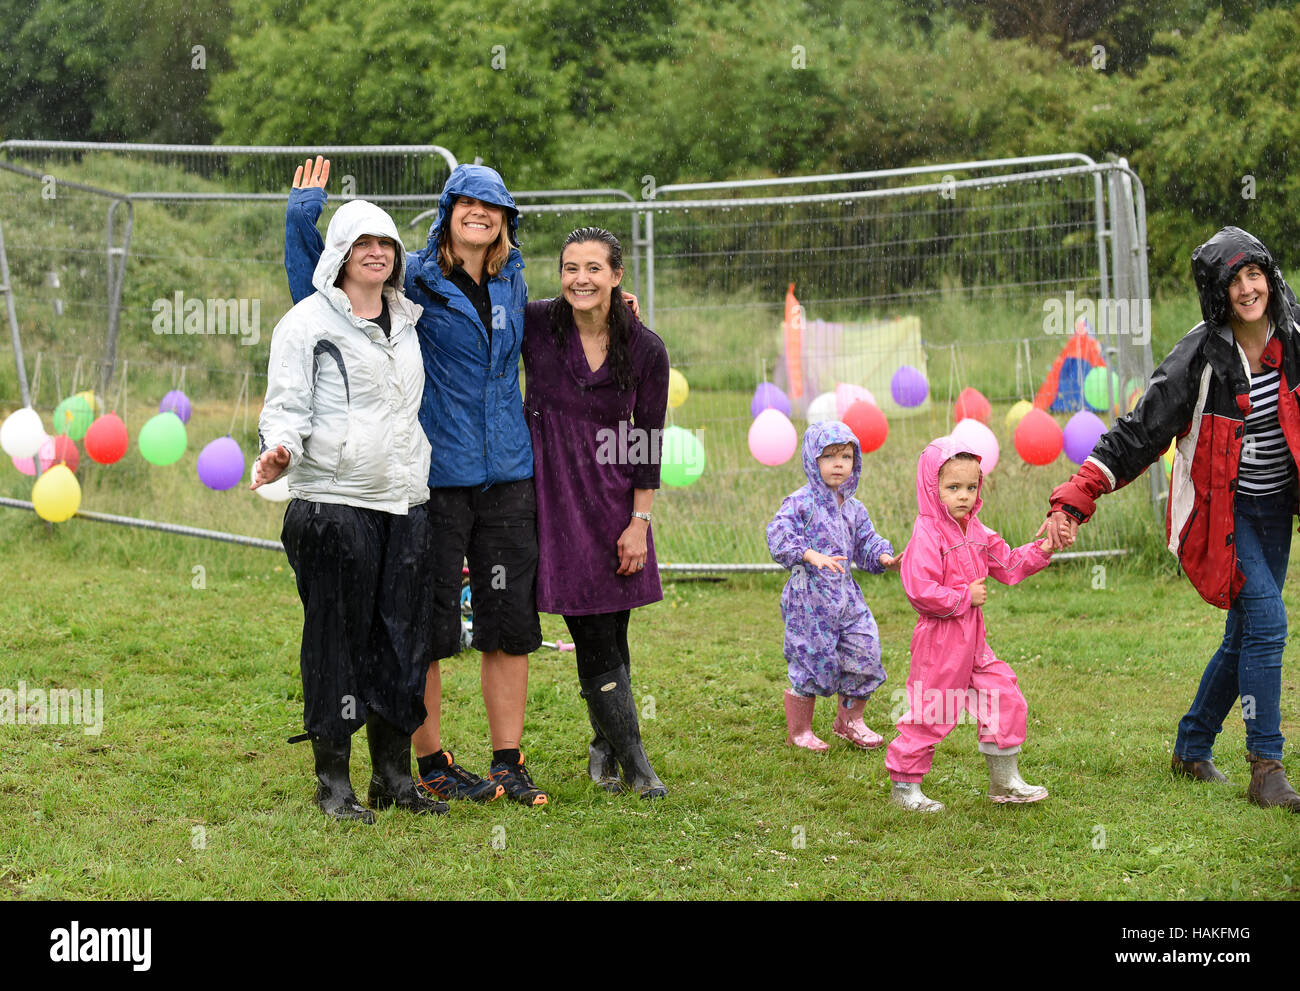 Smiling in the rain! Women and children having fun despite wet weather at an English summer fete Uk Stock Photo